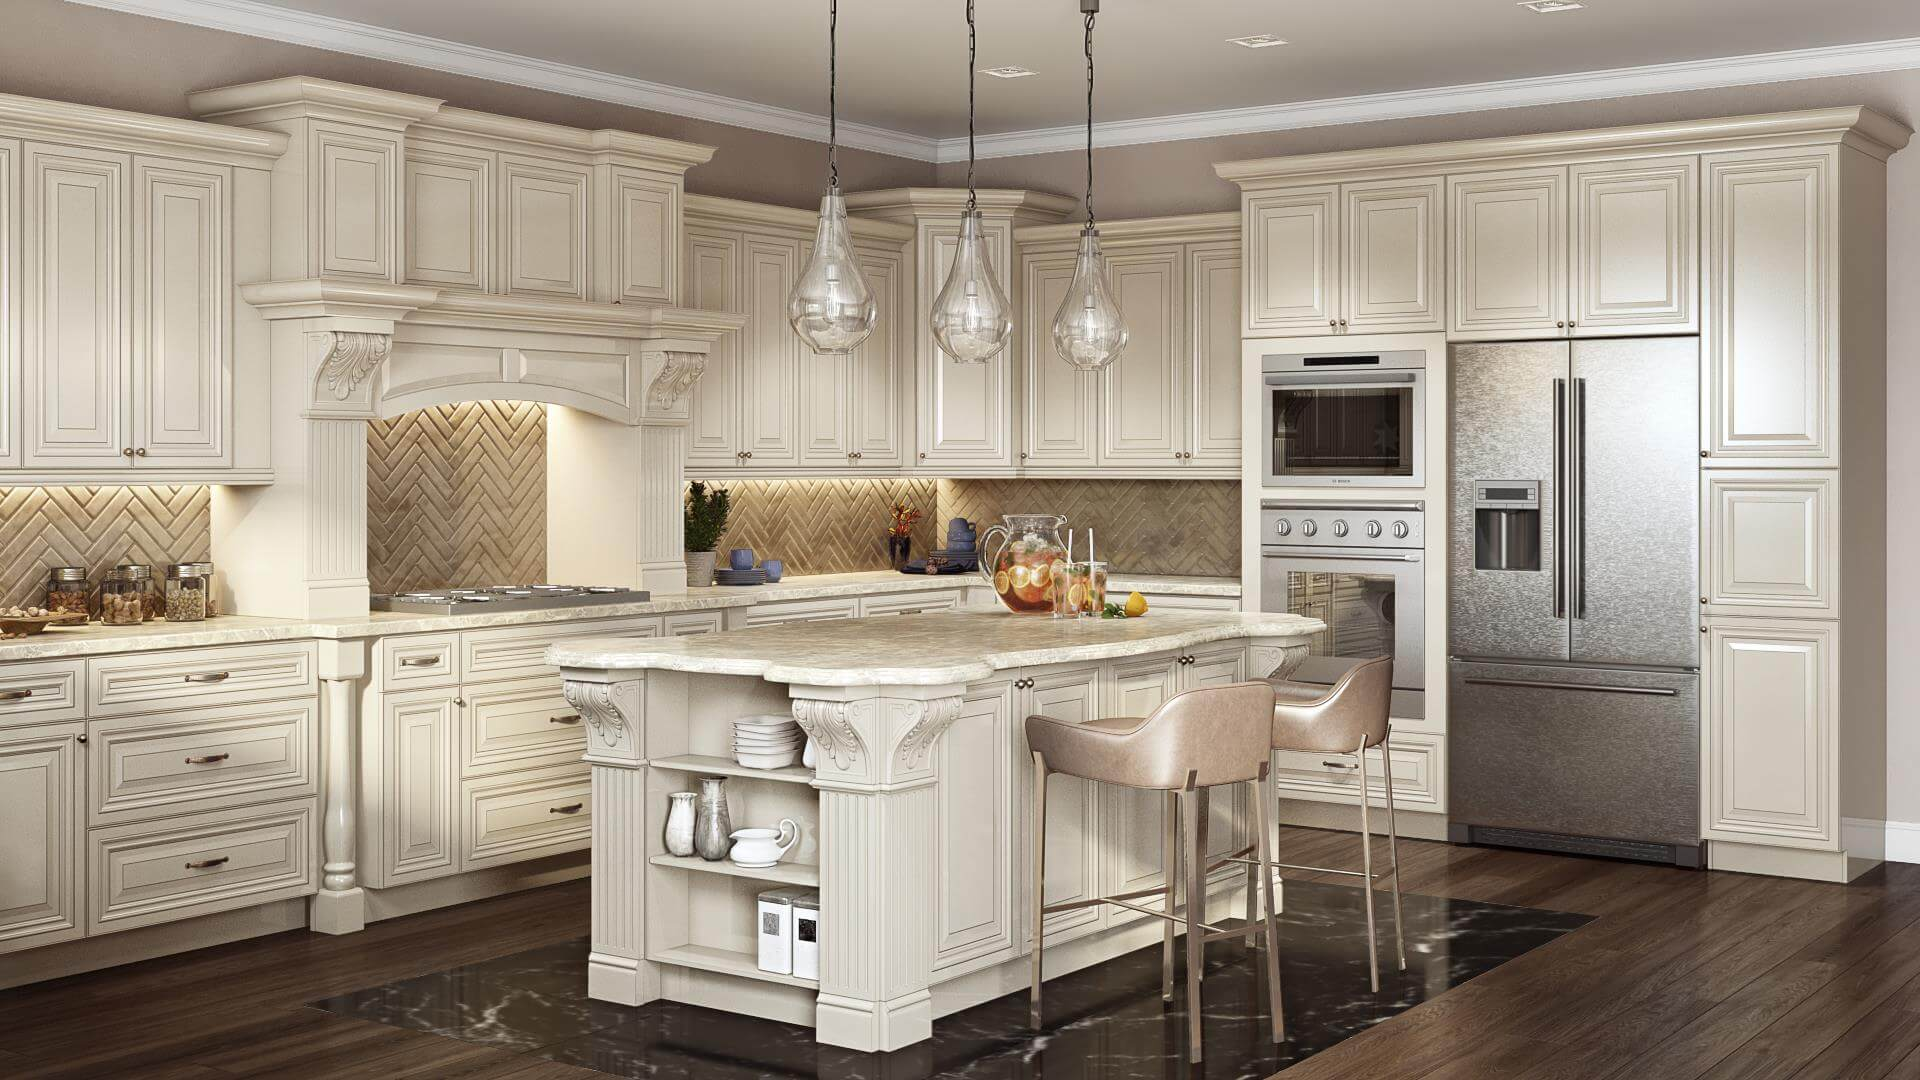 Kitchen Design Rendering of a Vintage-Style Project